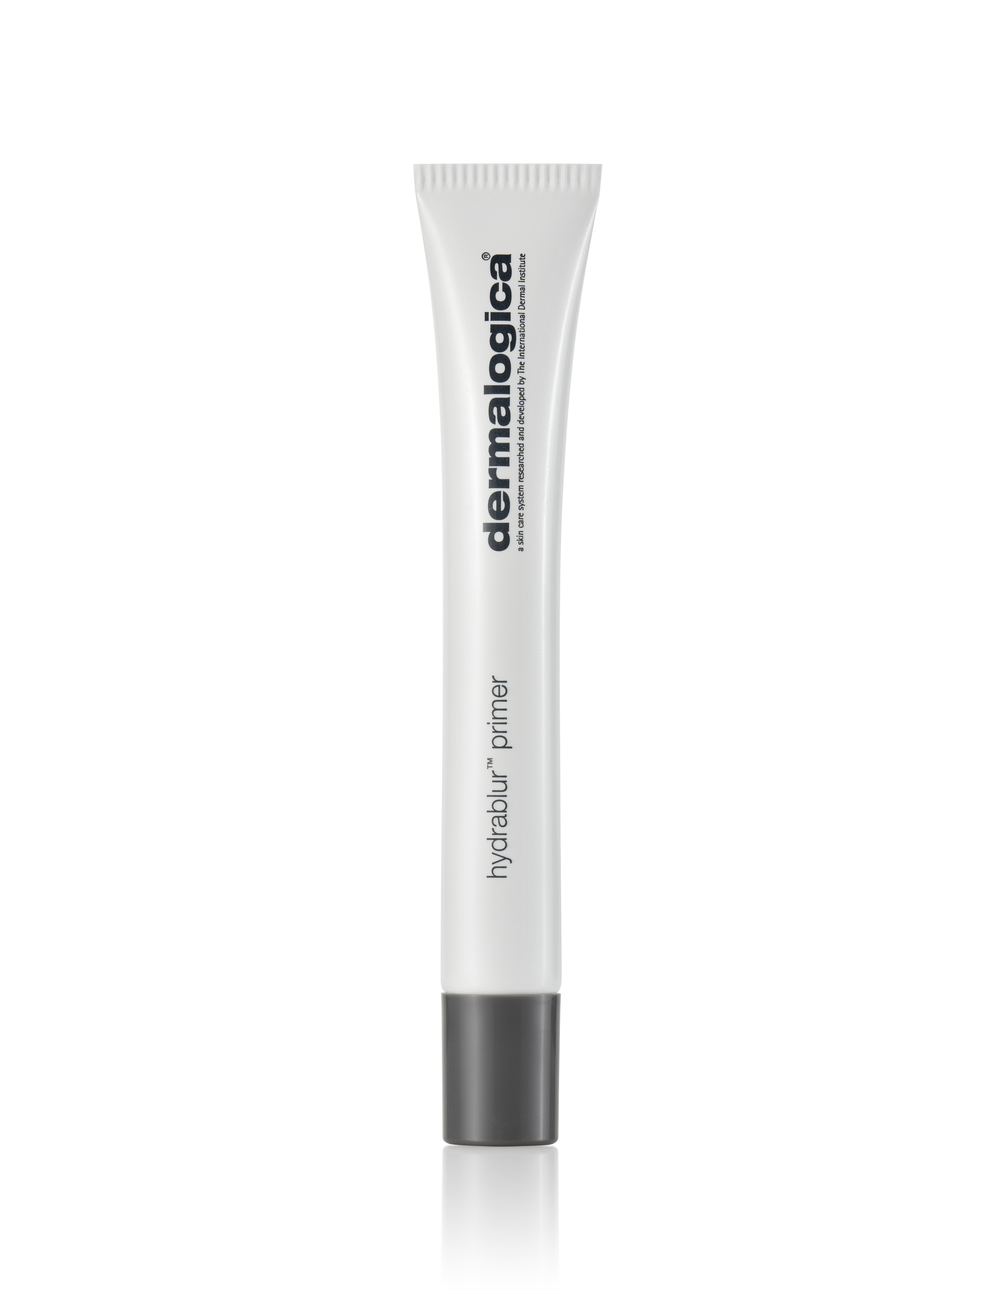 A primer that's creamy, not rubbery - so less inclined to 'peel' under makeup - that mattifies where you need it, but leaves a fresh veil for skin that looks healthy and skin-true. Apply with a foundation brush or beauty sponge with a light touch.